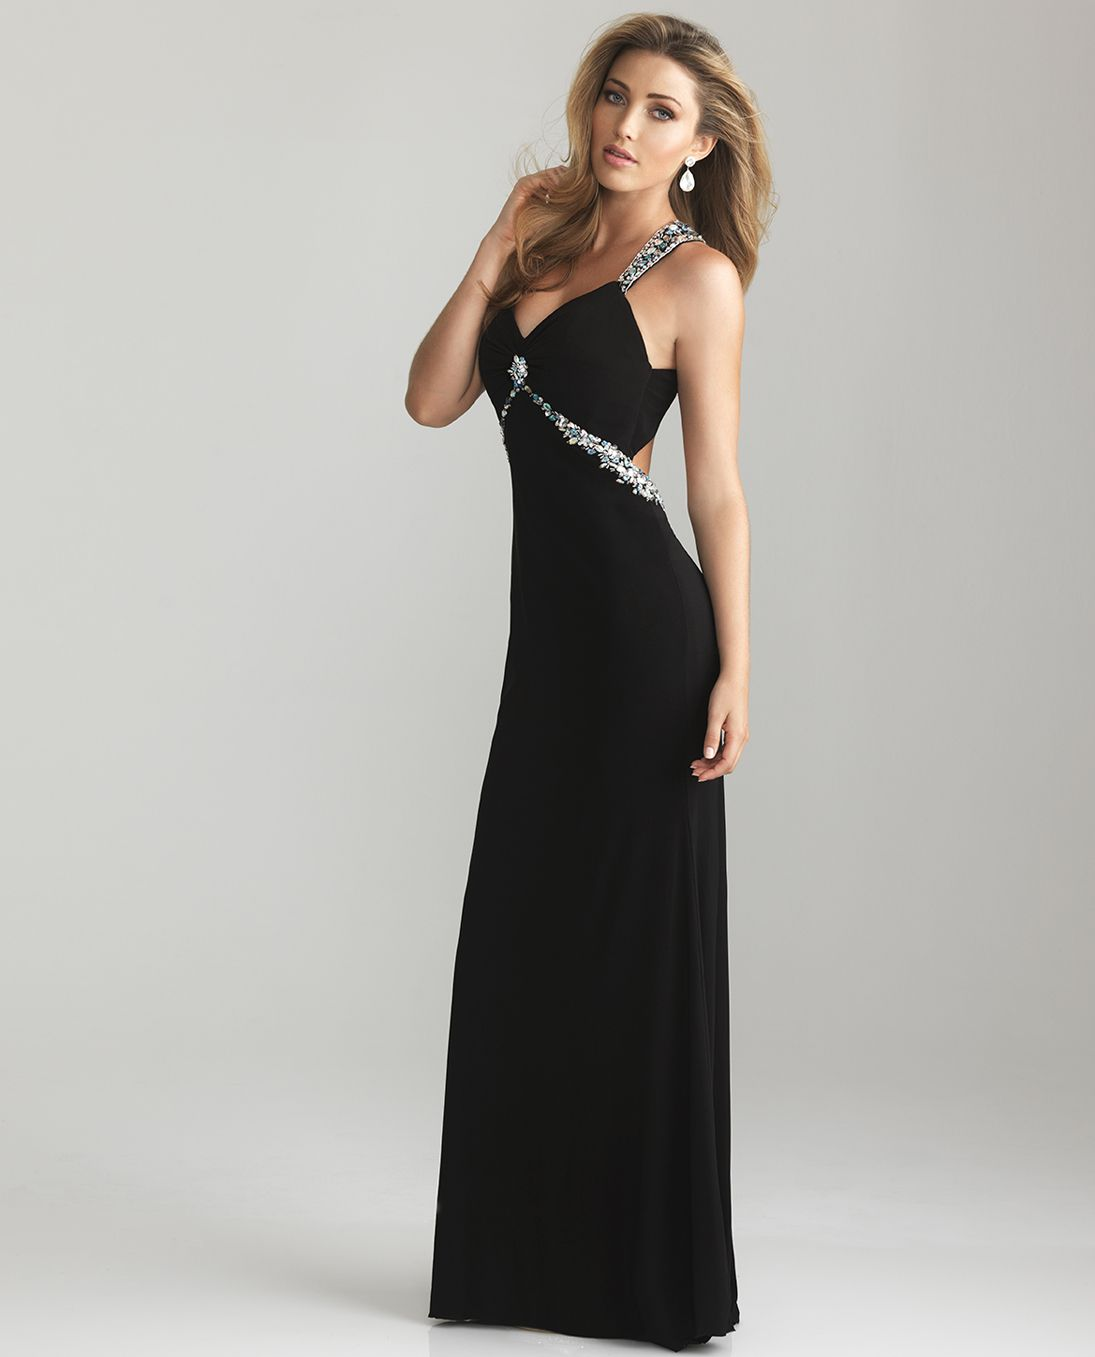 27 best night dressesprom dressesxv dresses images on pinterest jersey lattice bead dress with open back from camille la vie and group usa ombrellifo Gallery